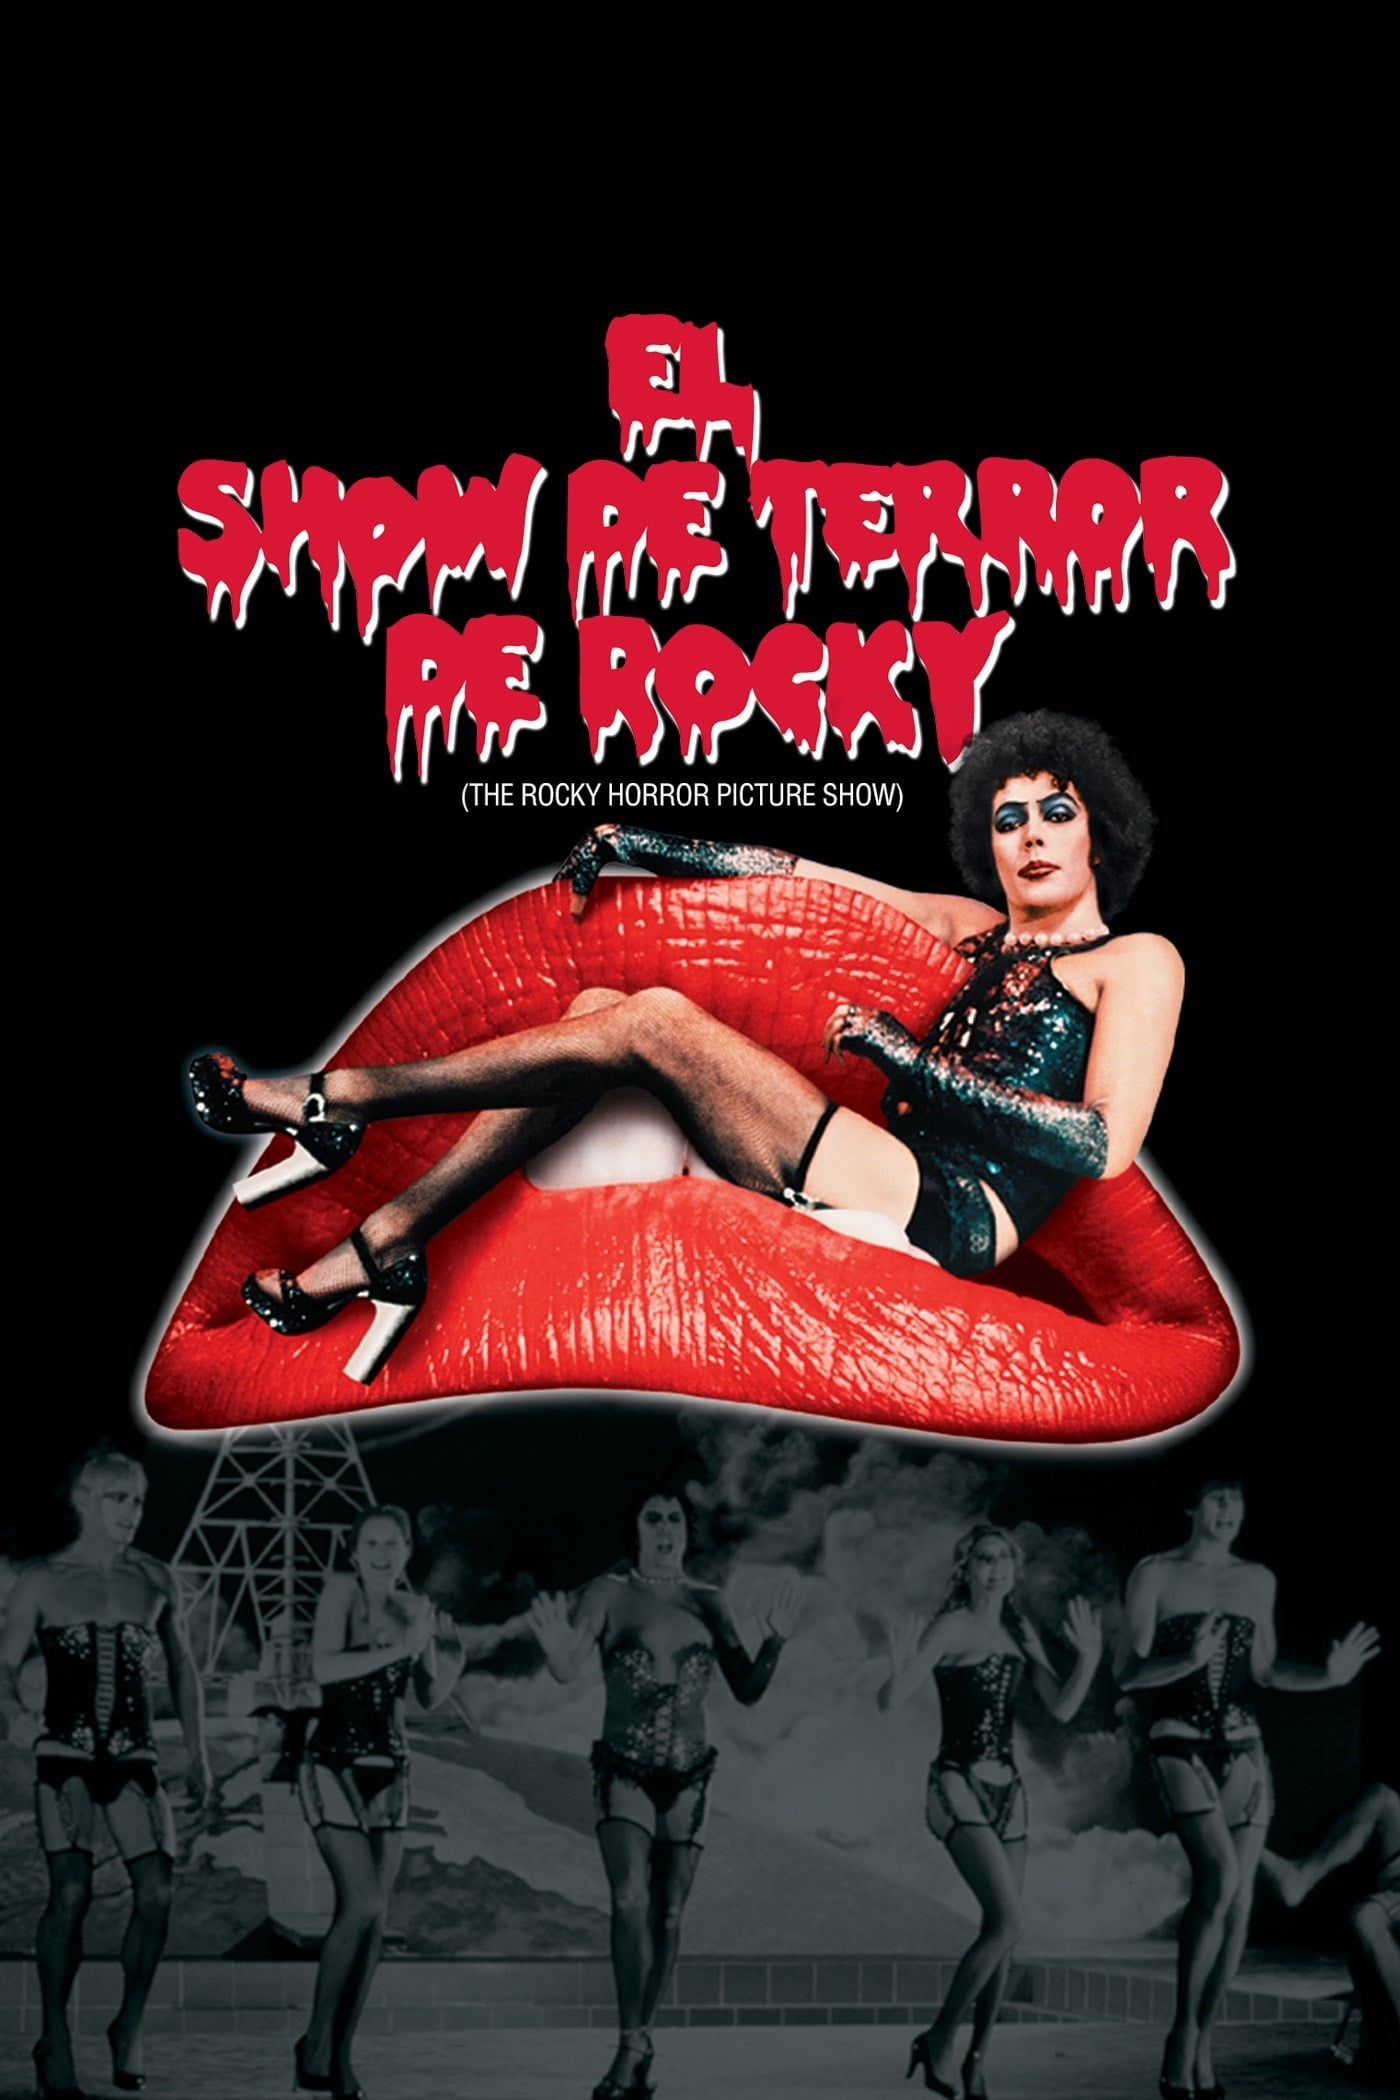 Backroom sexy rocky horror sex pictures weight